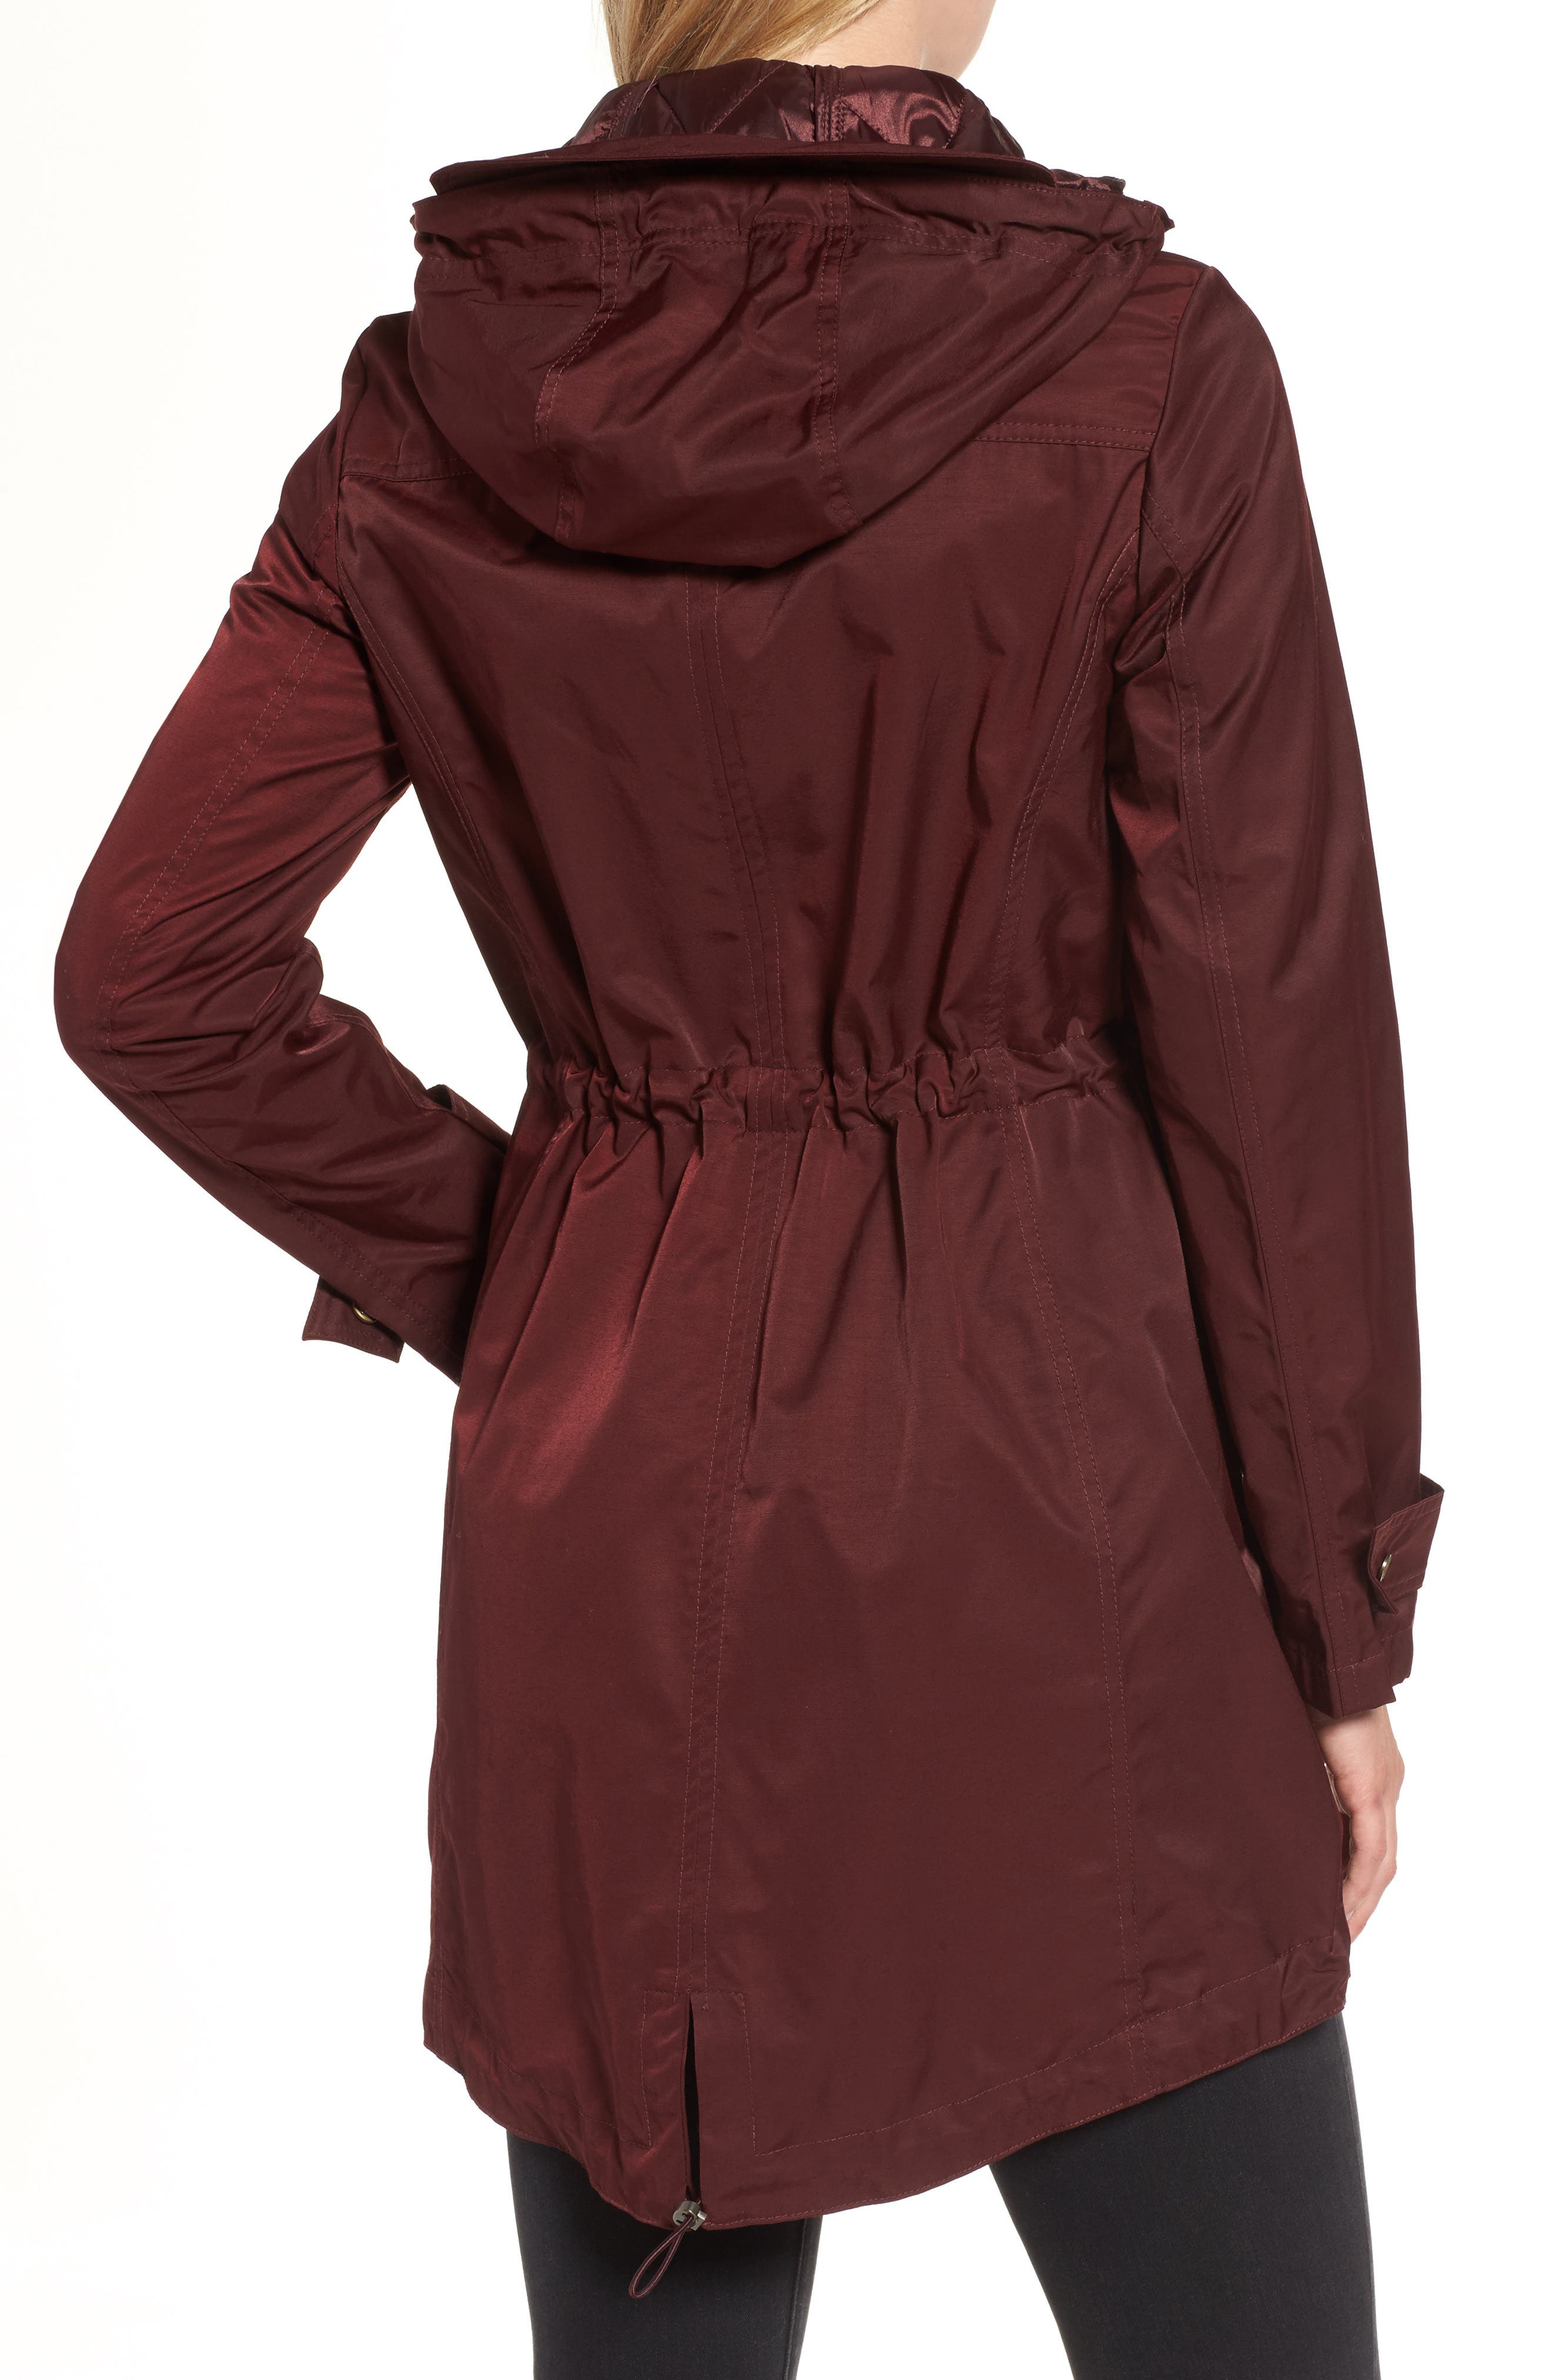 Parka with Detachable Bib Insert,                             Alternate thumbnail 2, color,                             Burgundy